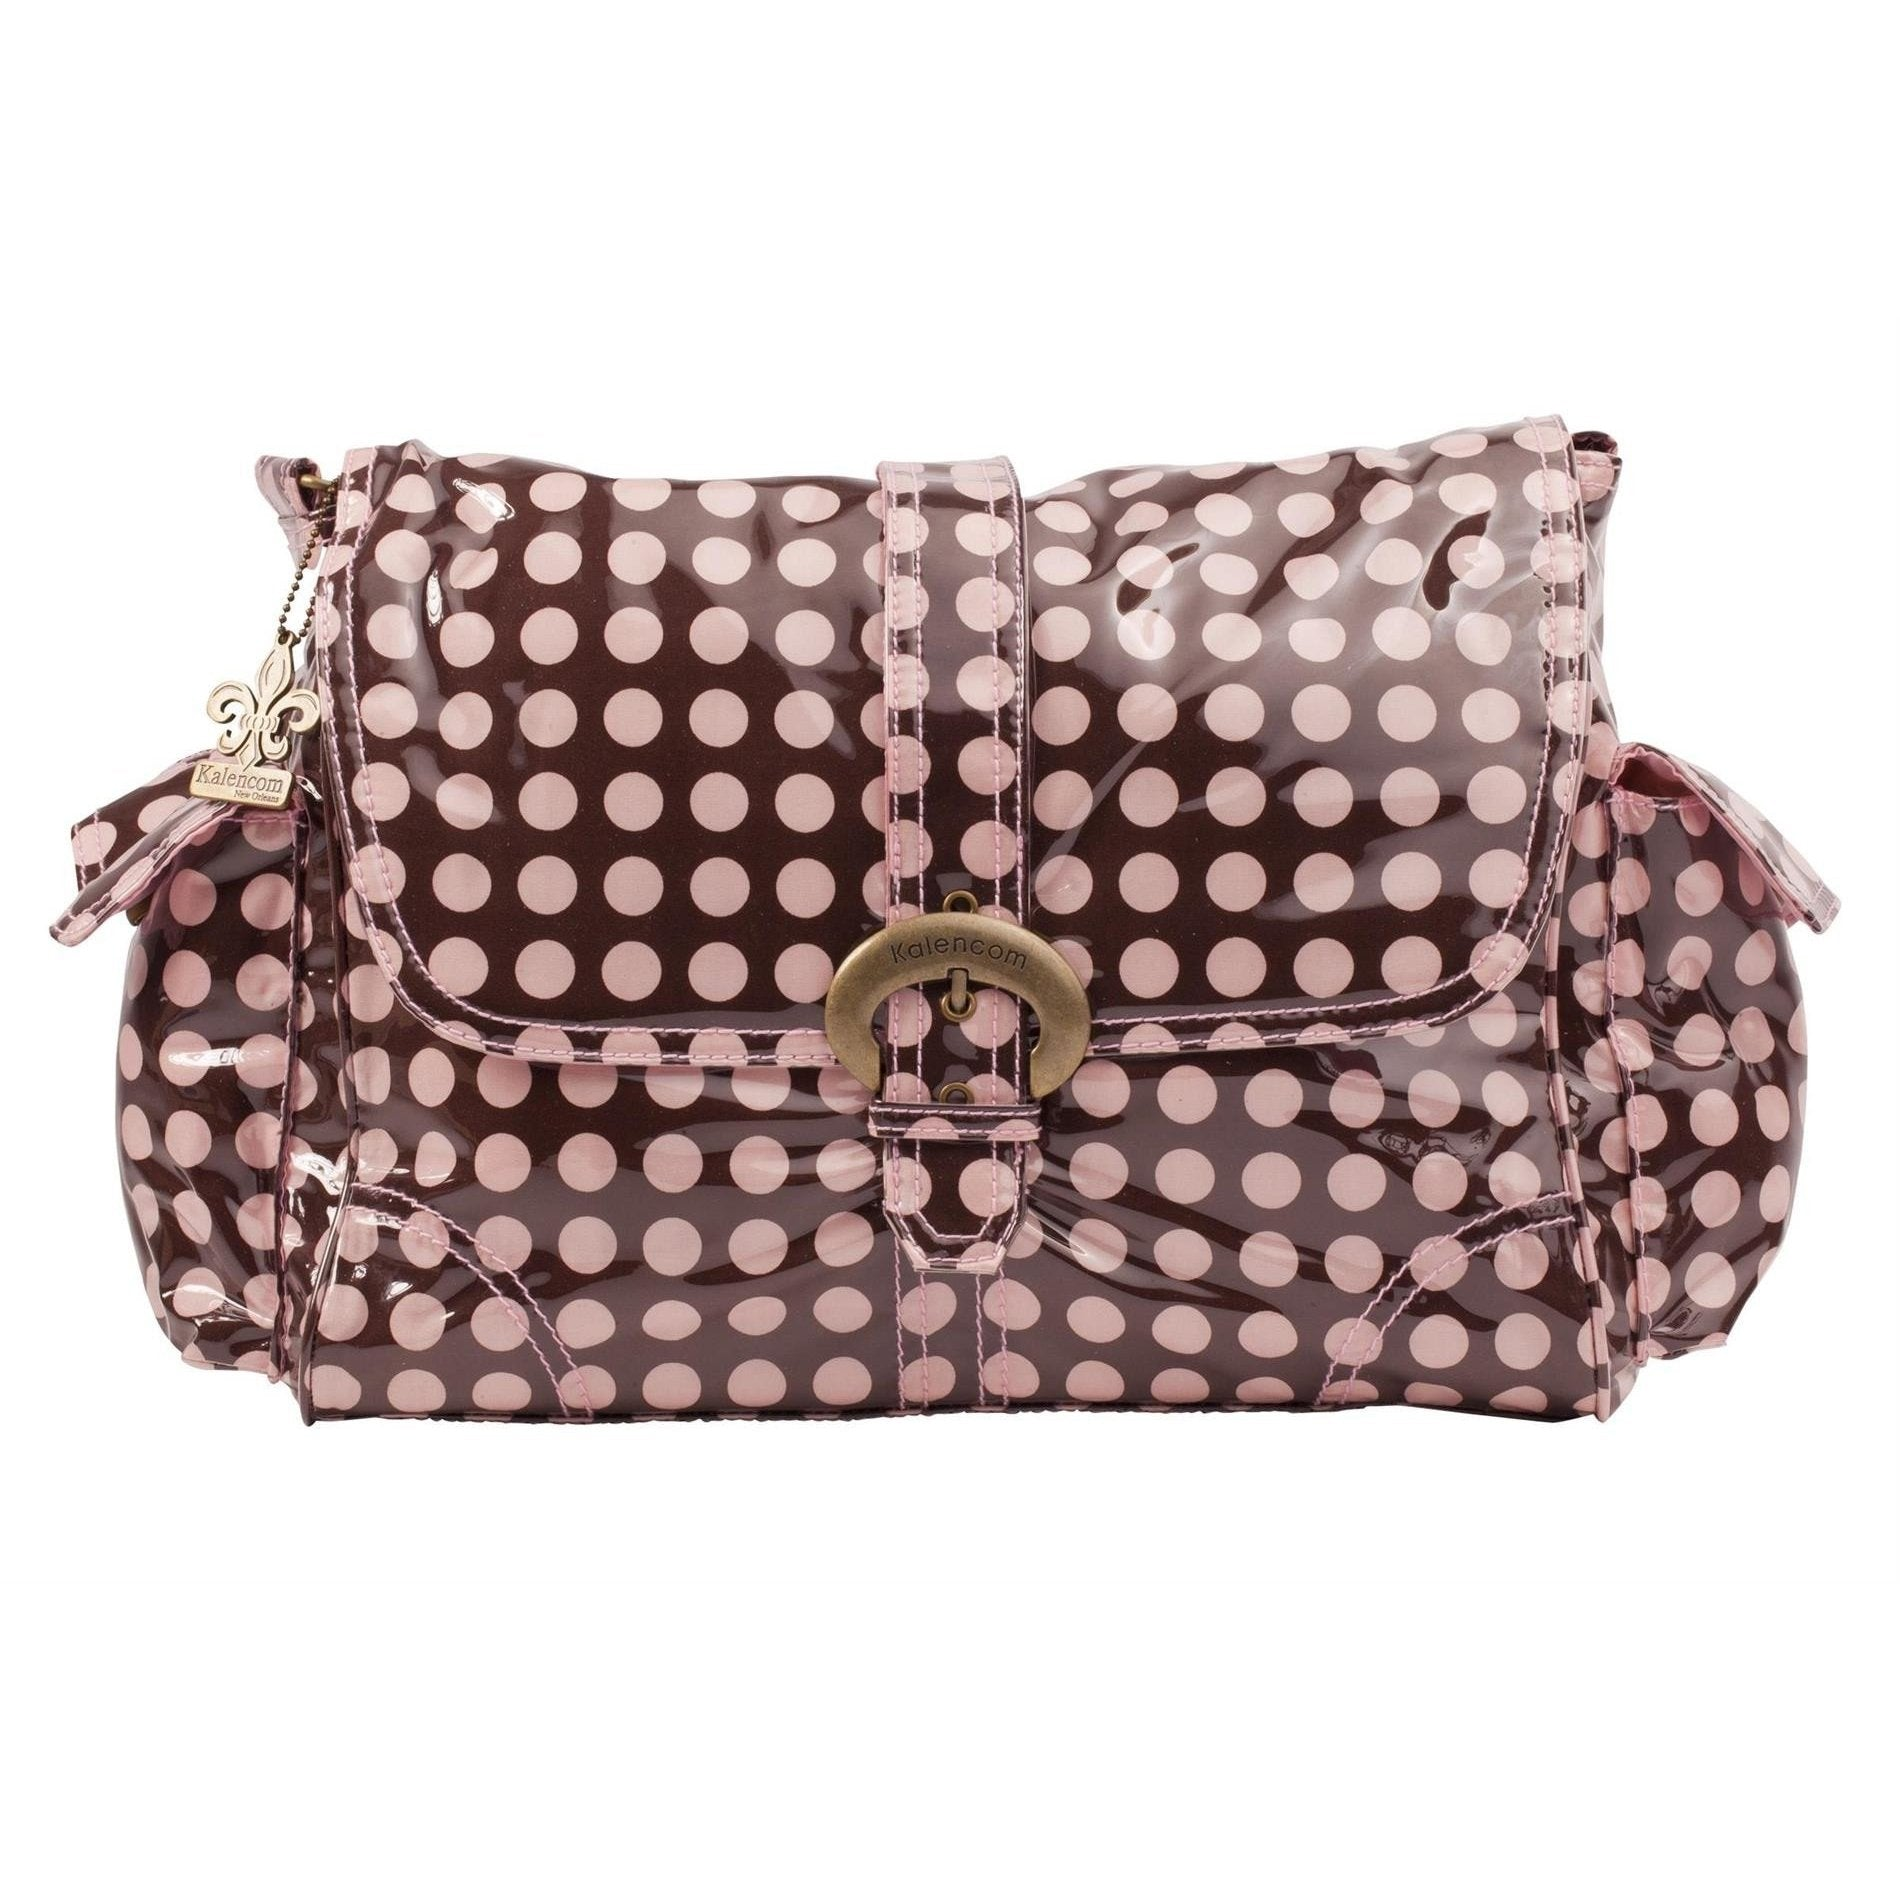 Heavenly Dots - Chocolate-Pink Laminated Buckle Diaper Bag | Style 2960 - Kalencom-Diaper Bags-Jack and Jill Boutique